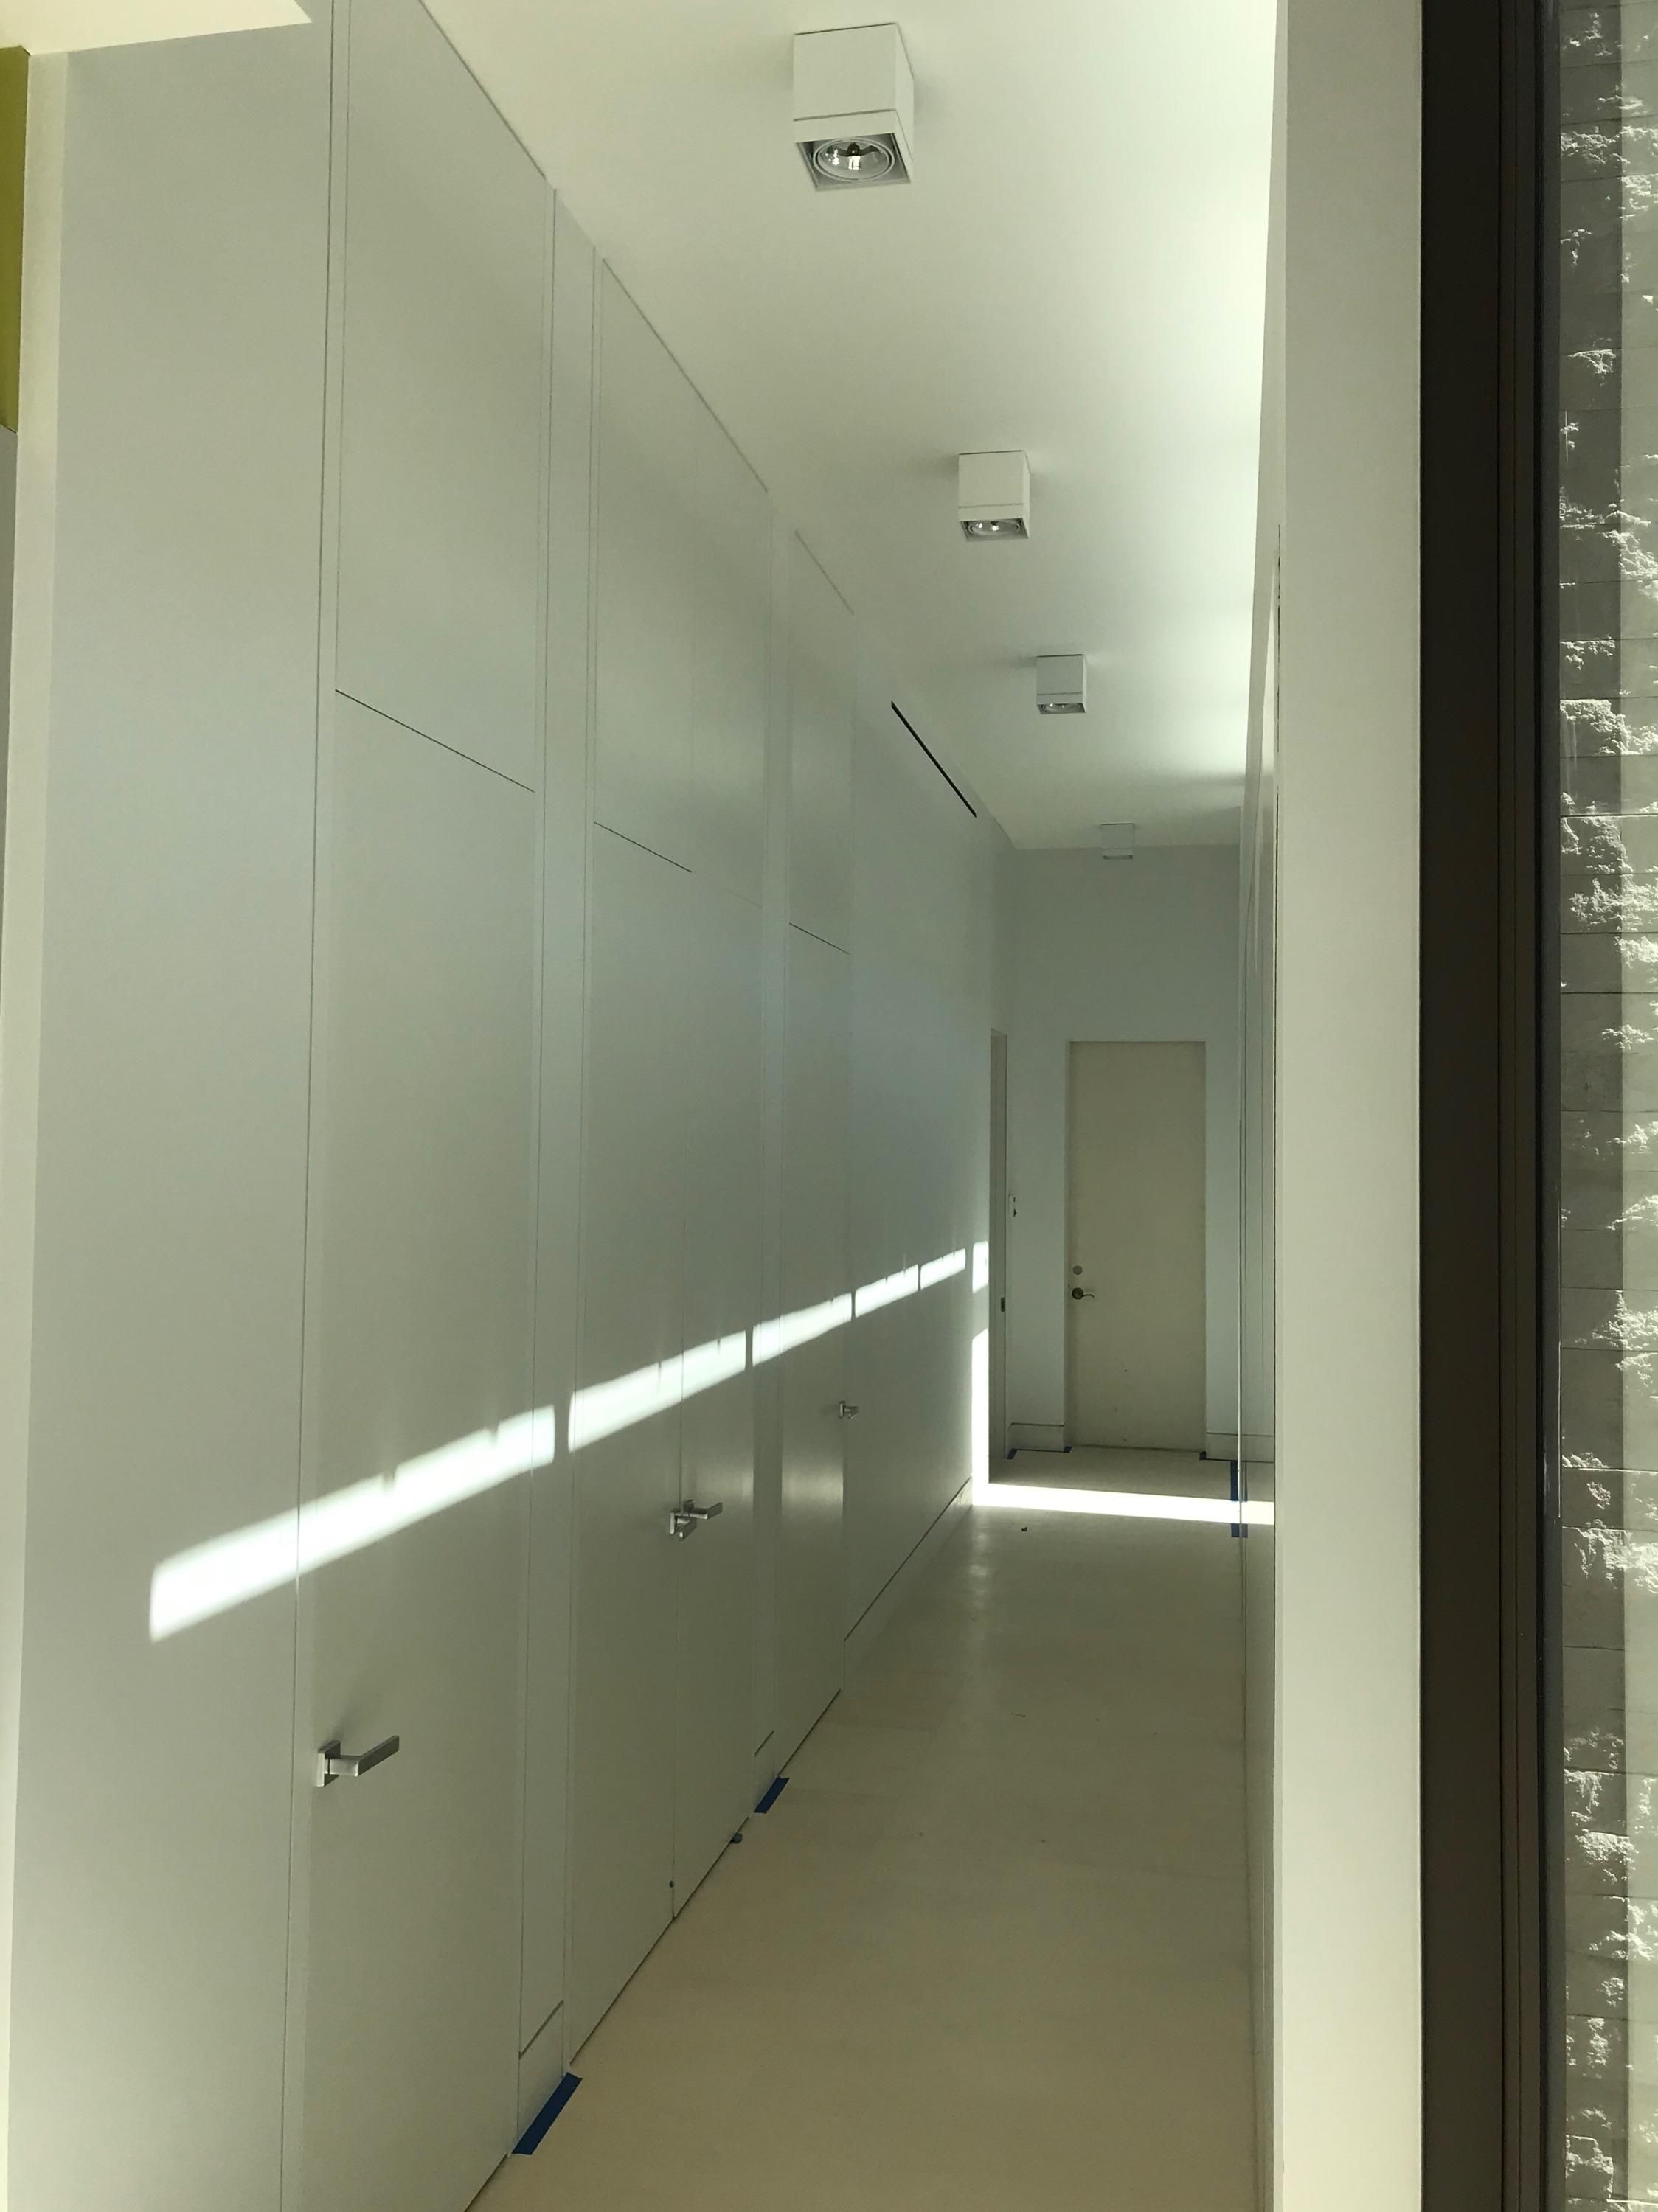 Trim Less Doors From Mirage Series Of Contemporary Construction Product By Dorr Houzzer Wall Paneling Doors Custom Wall